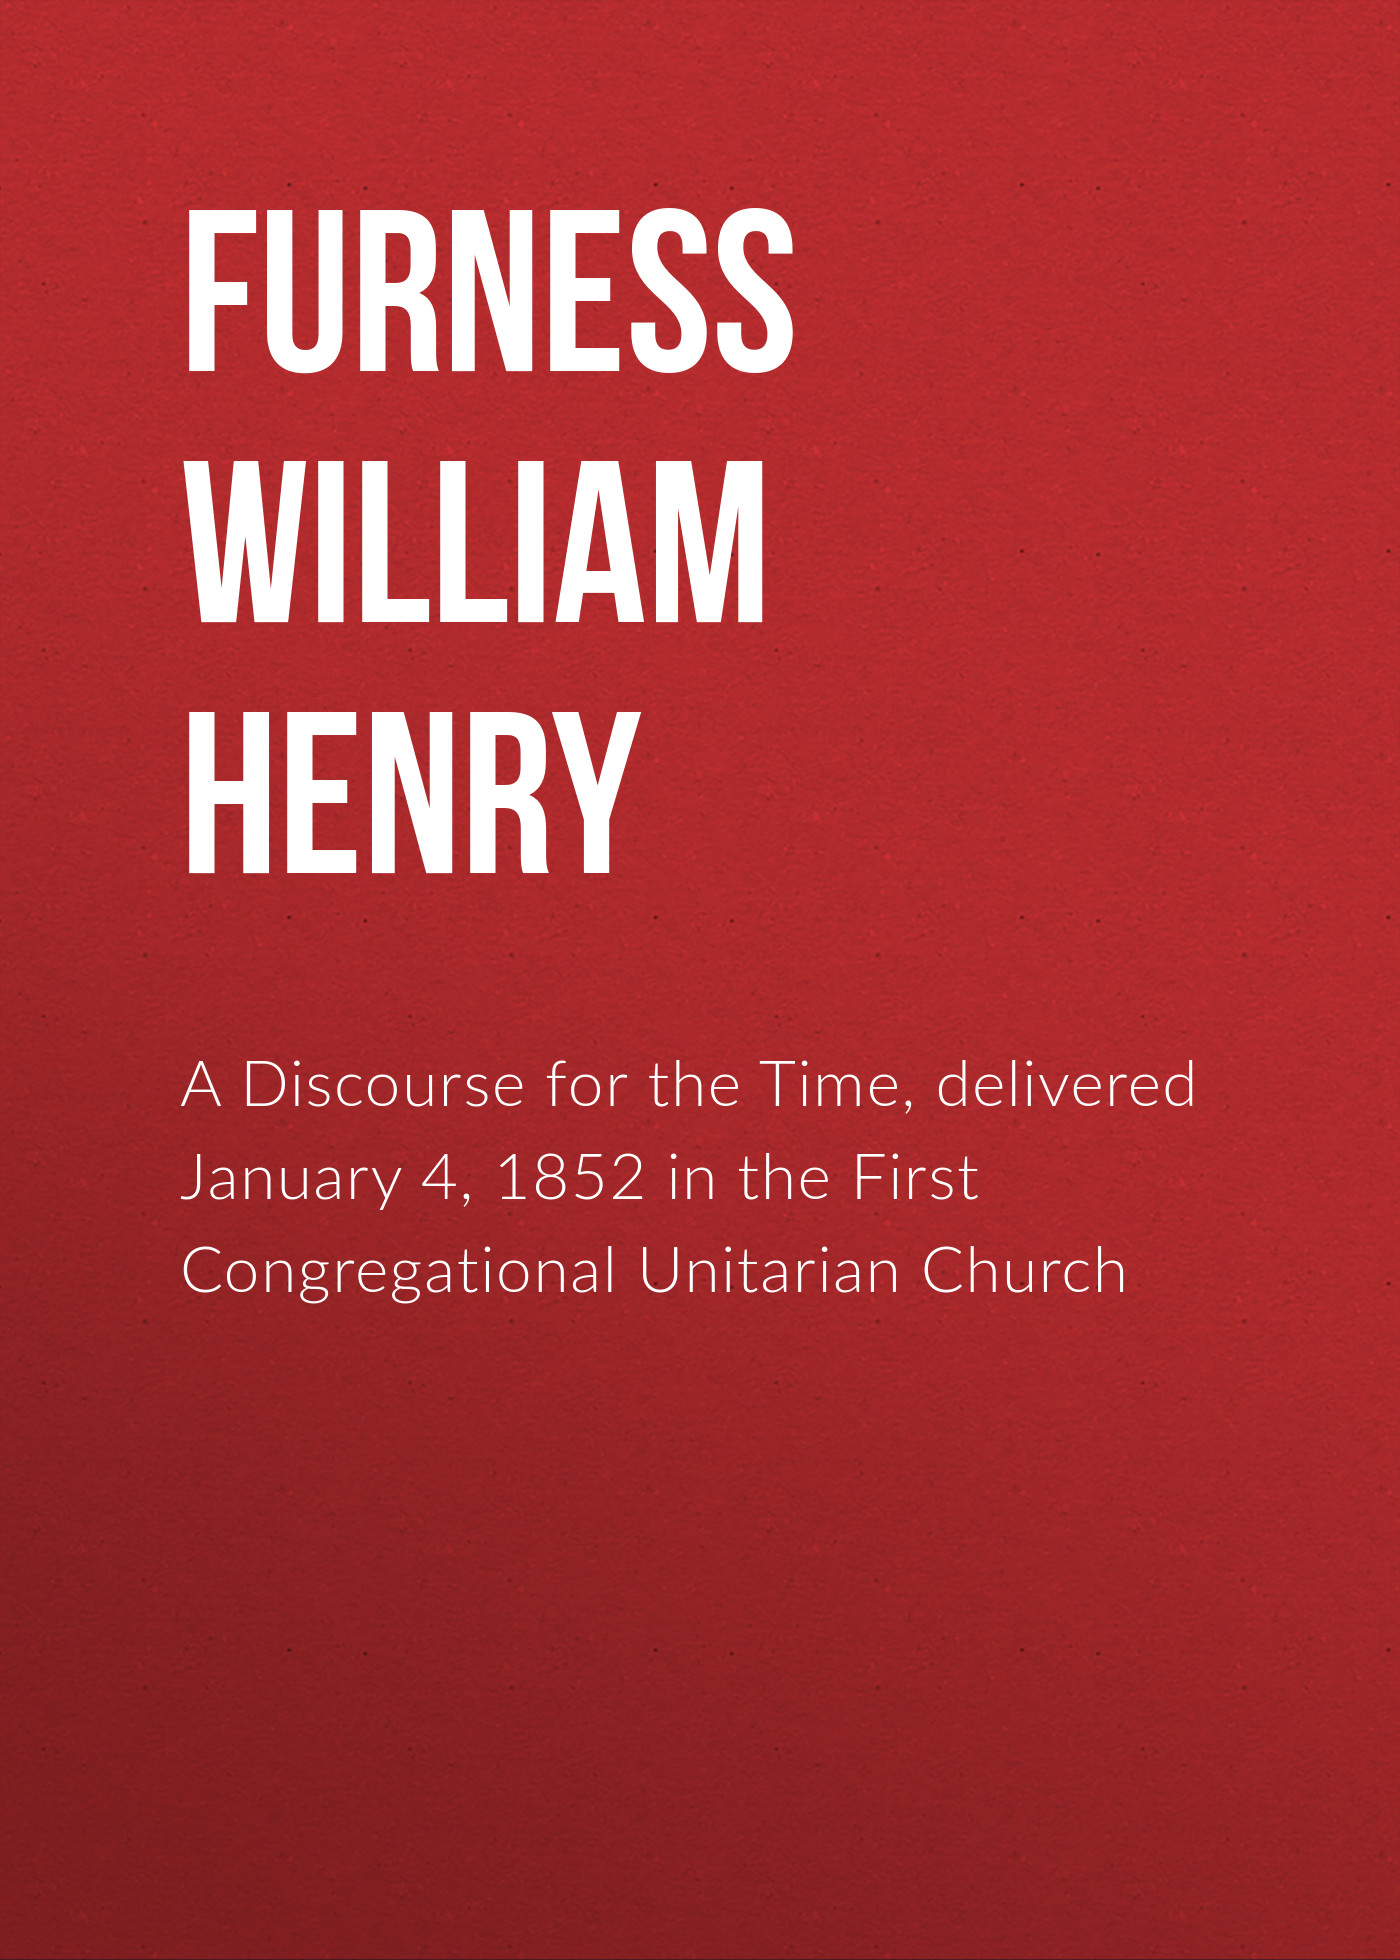 Furness William Henry A Discourse for the Time, delivered January 4, 1852 in the First Congregational Unitarian Church folies a41046357 folies fw14 15